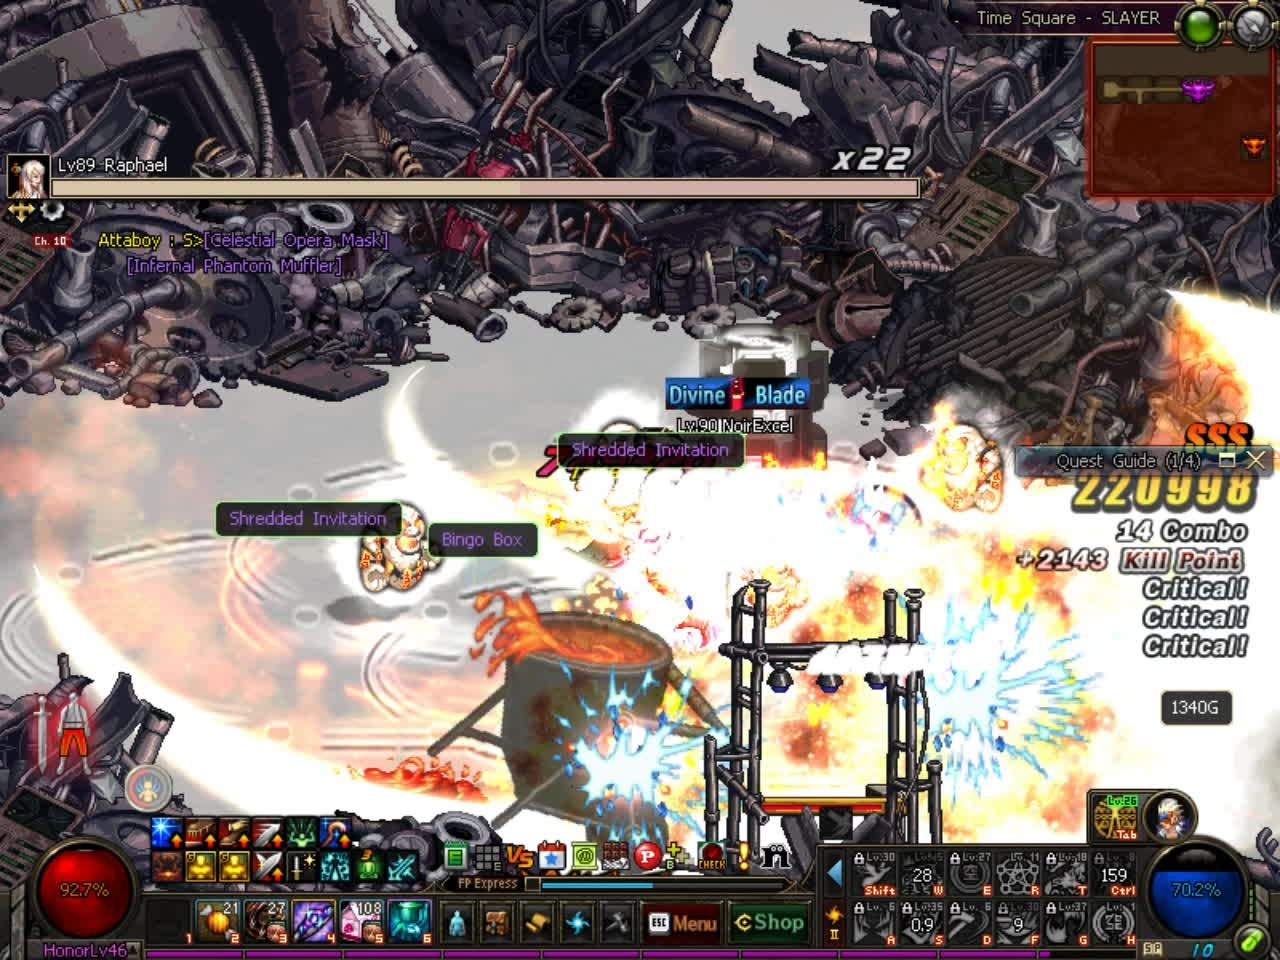 60fps, dfo, mmorpg, DFO Hell Mode Vol.70 GIFs